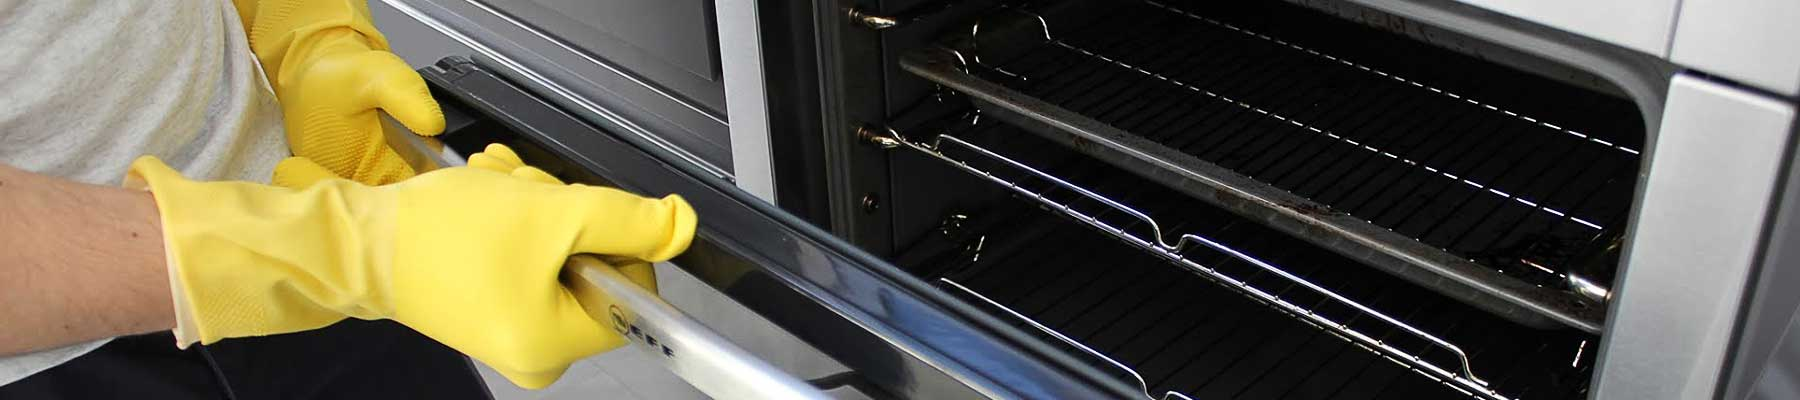 header-Cleaning-Kitchens-Ovens